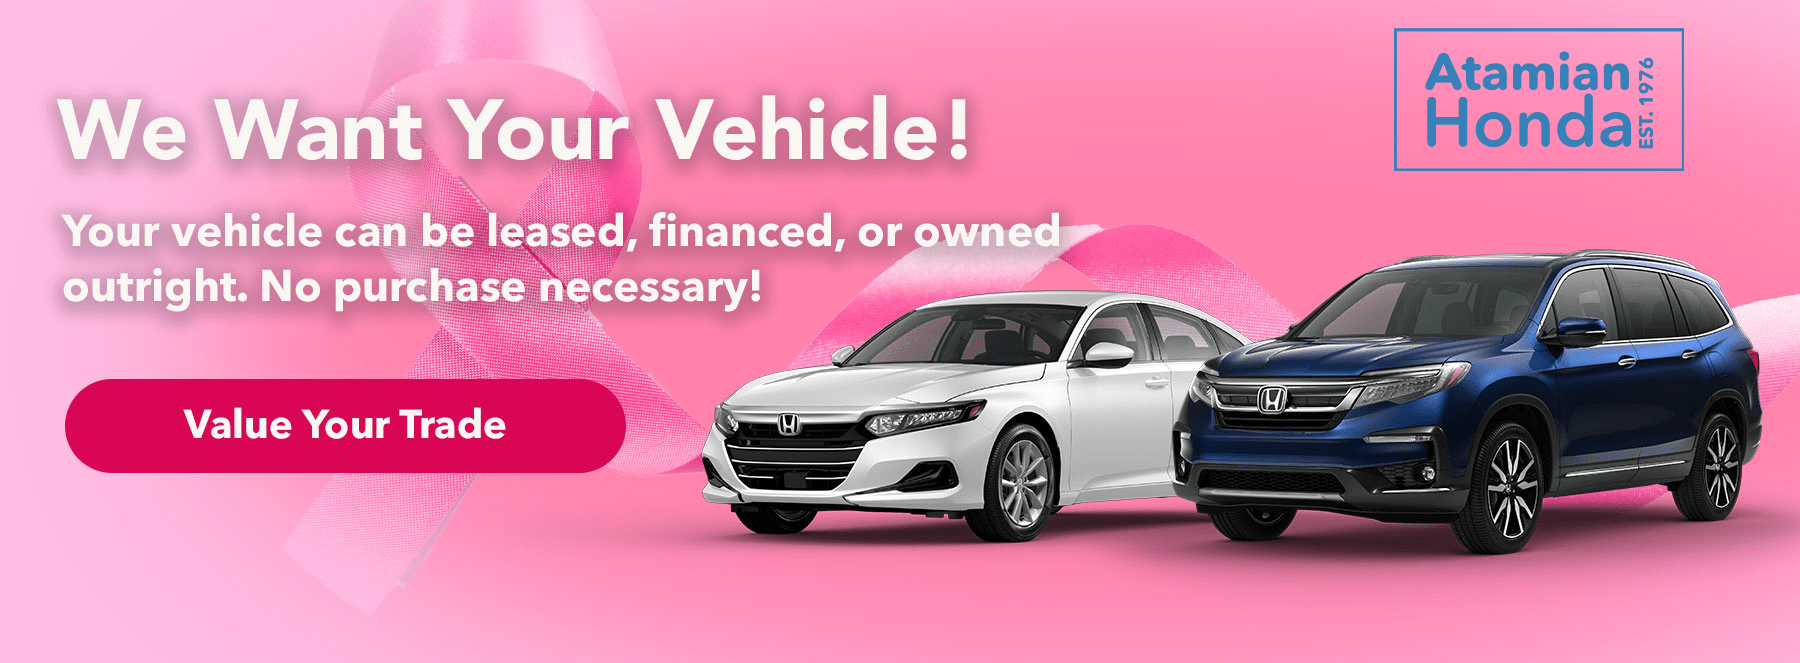 We Want Your Vehicle! Subtext: Your vehicle can be leased, financed, or owned outright. No purchase necessary!